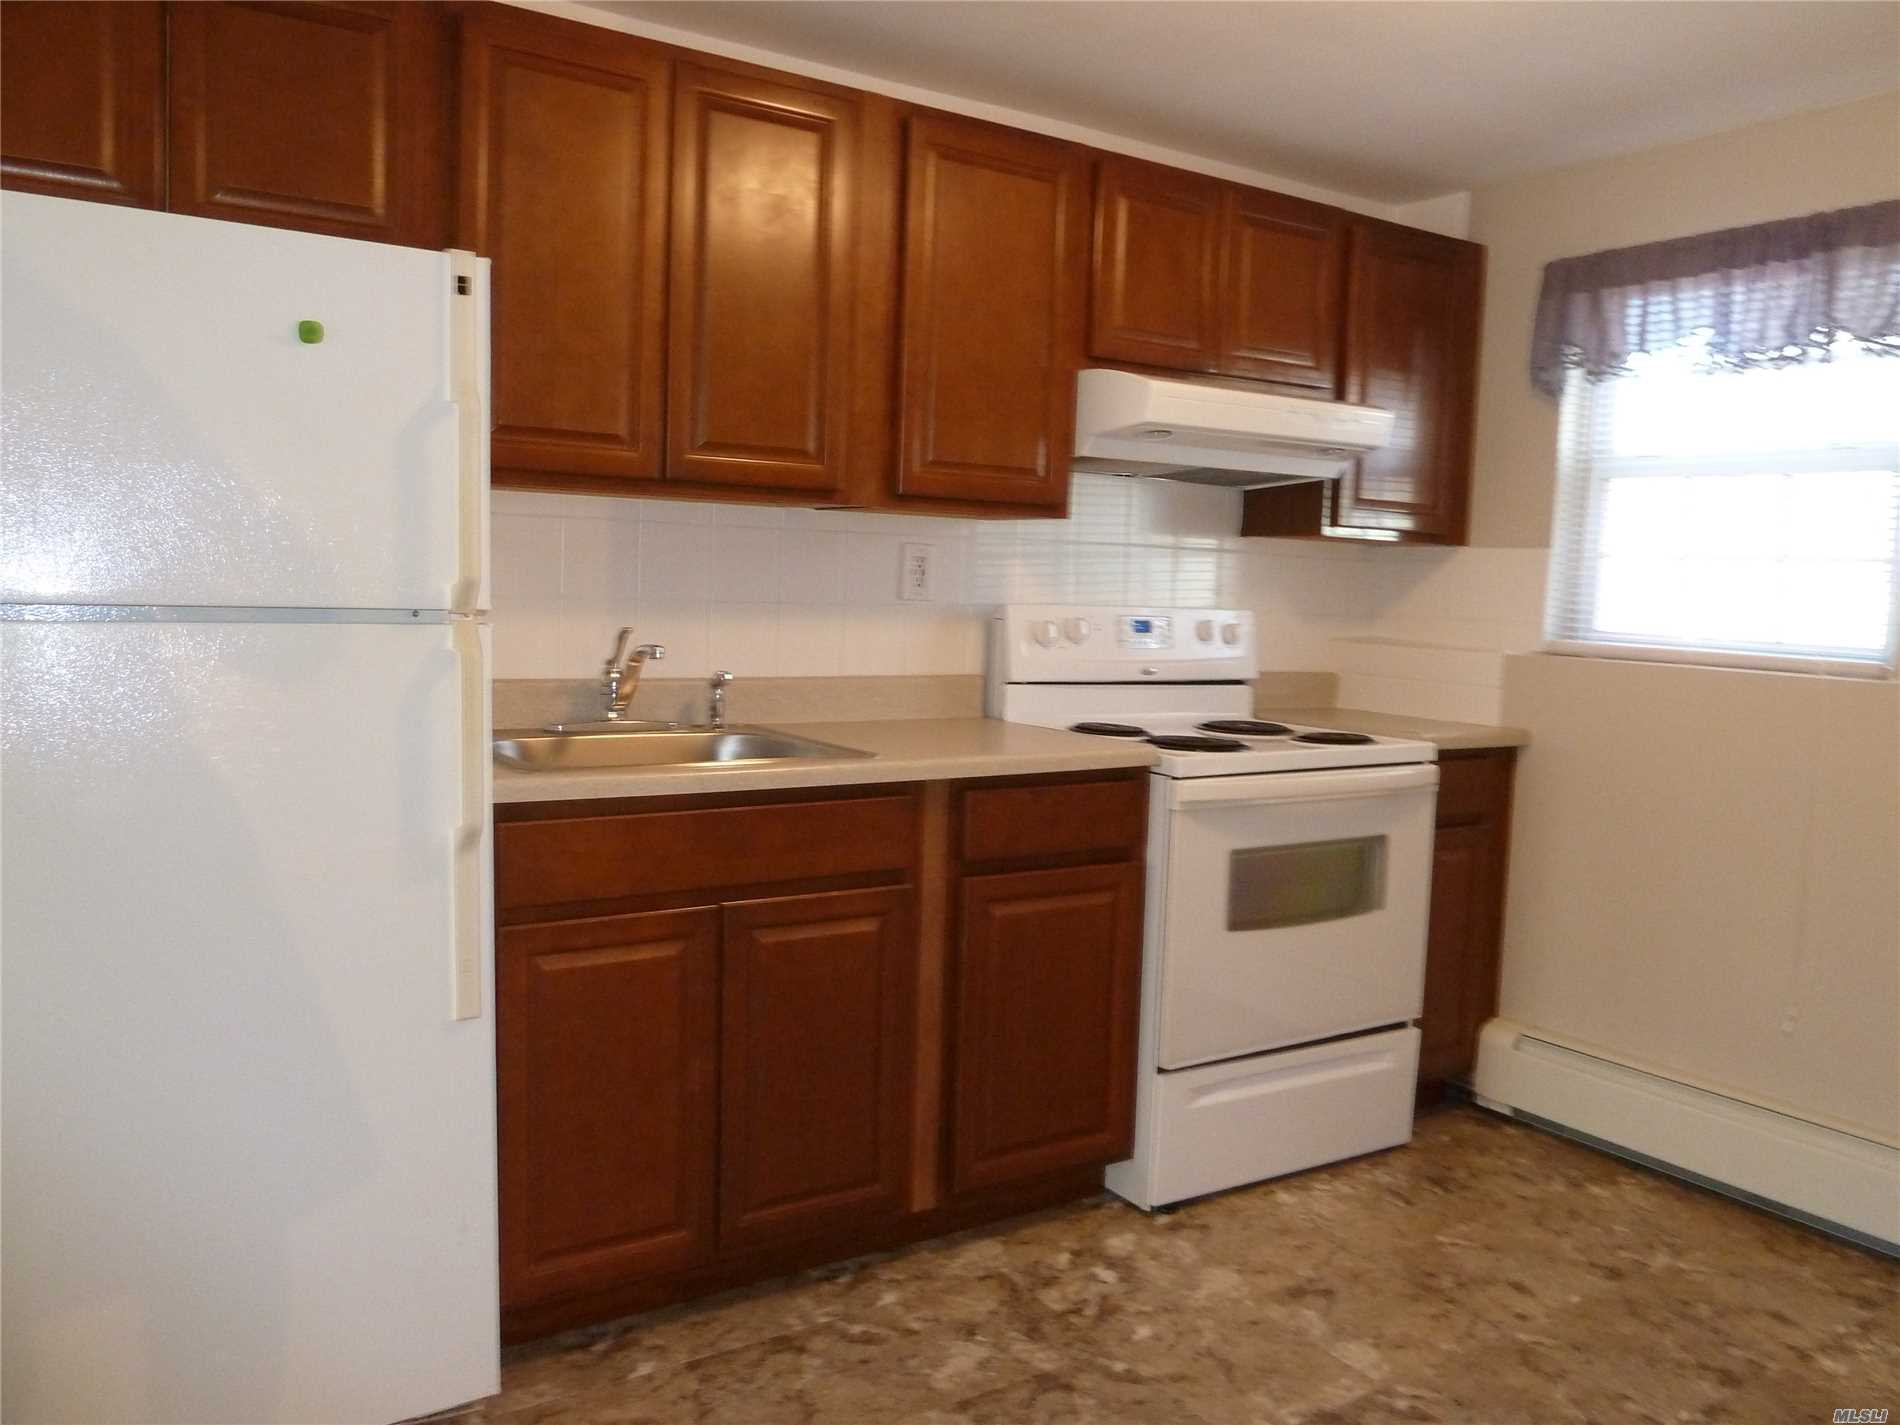 Amazing Brand New 1 Bedroom Apartment In Mint Condition, With Large Living Room, Full Bath With Tub And Eat In Kitchen Including New Appliances, Cabinets, Flooring, Carpets And Fresh Paint. Located In A Quiet Neighborhood Close To Huntington Village. Minutes Away From All Major Highways, Walt Whitman Mall, Rt 110 And Train. Free Use Of Washer/Dryer. Private Parking Space And Entrance. Owner Pays Heat/Water. Tenant Pays Electric/Cable. No Pets Or Smoking. References/Credit/Financials Required.